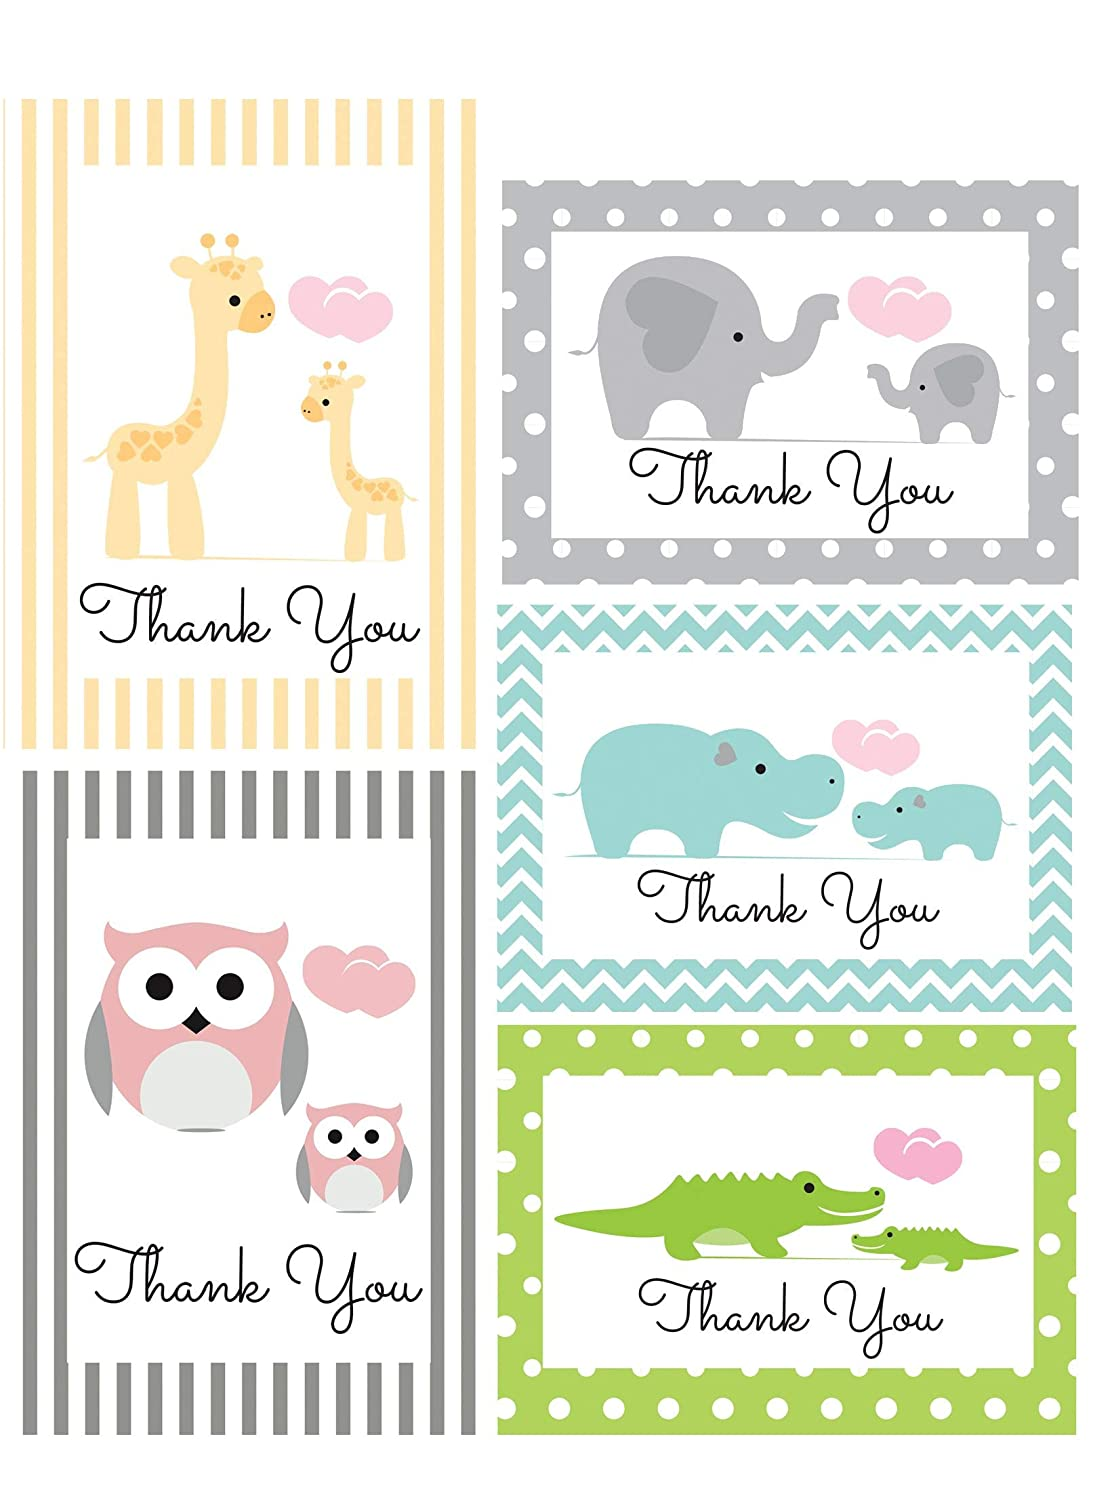 Amazon.com: Thank You Cards for Baby, Shower, Kids - Jungle Animal Safari -  Assorted Bulk, 50 Note Card Boxed Set, Blank Inside with White Envelopes -  Made ...